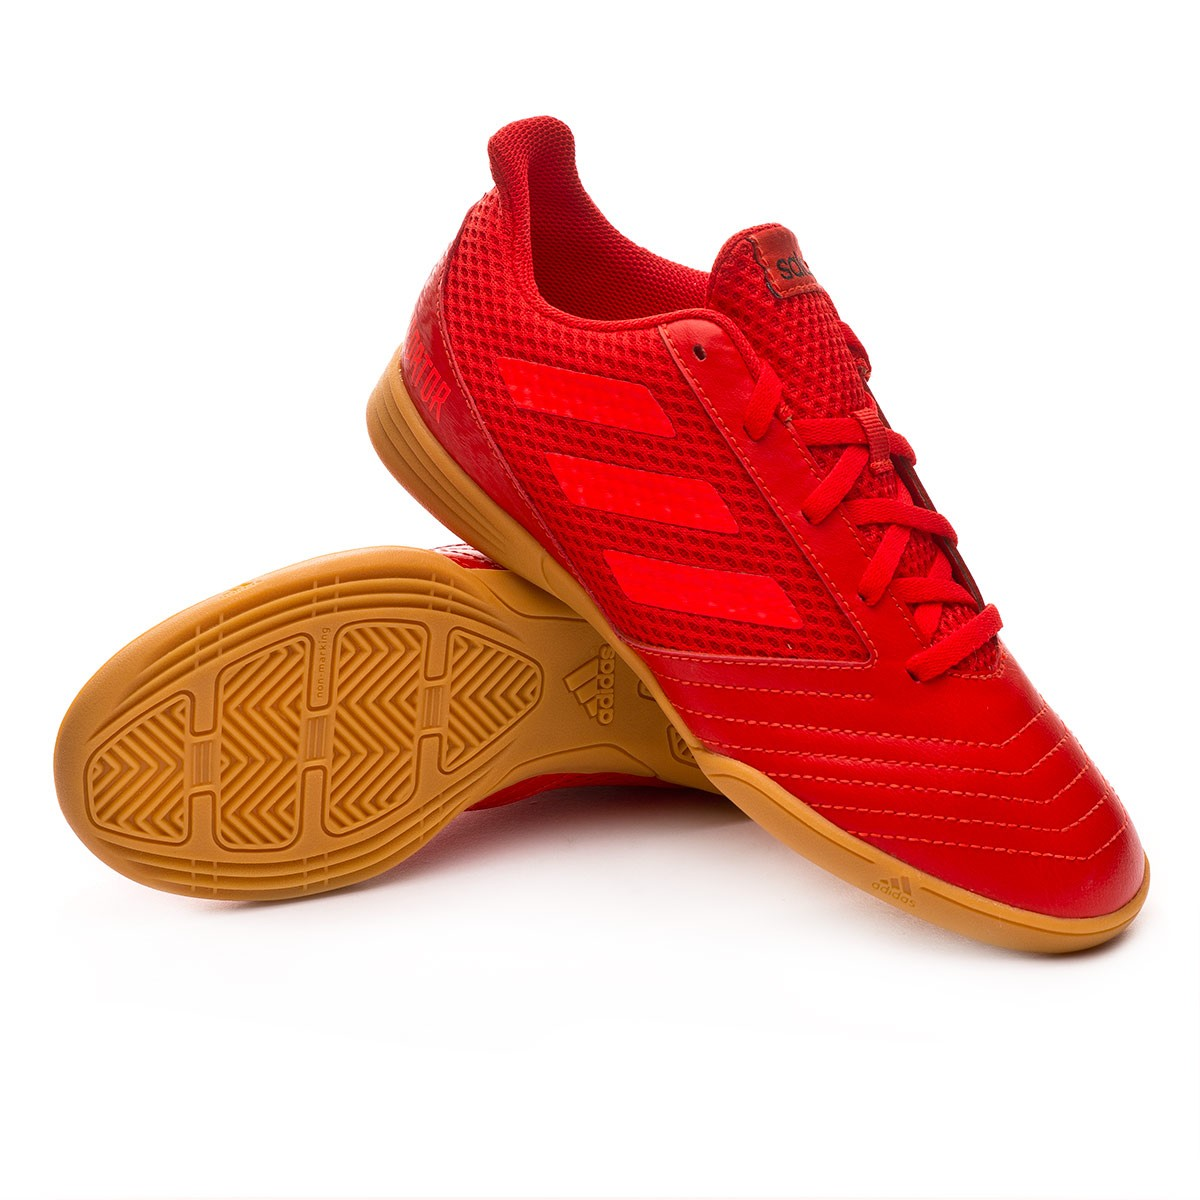 50935613590 Futsal Boot adidas Kids Predator Tango 19.4 IN Sala Active red-Solar  red-Core black - Tienda de fútbol Fútbol Emotion